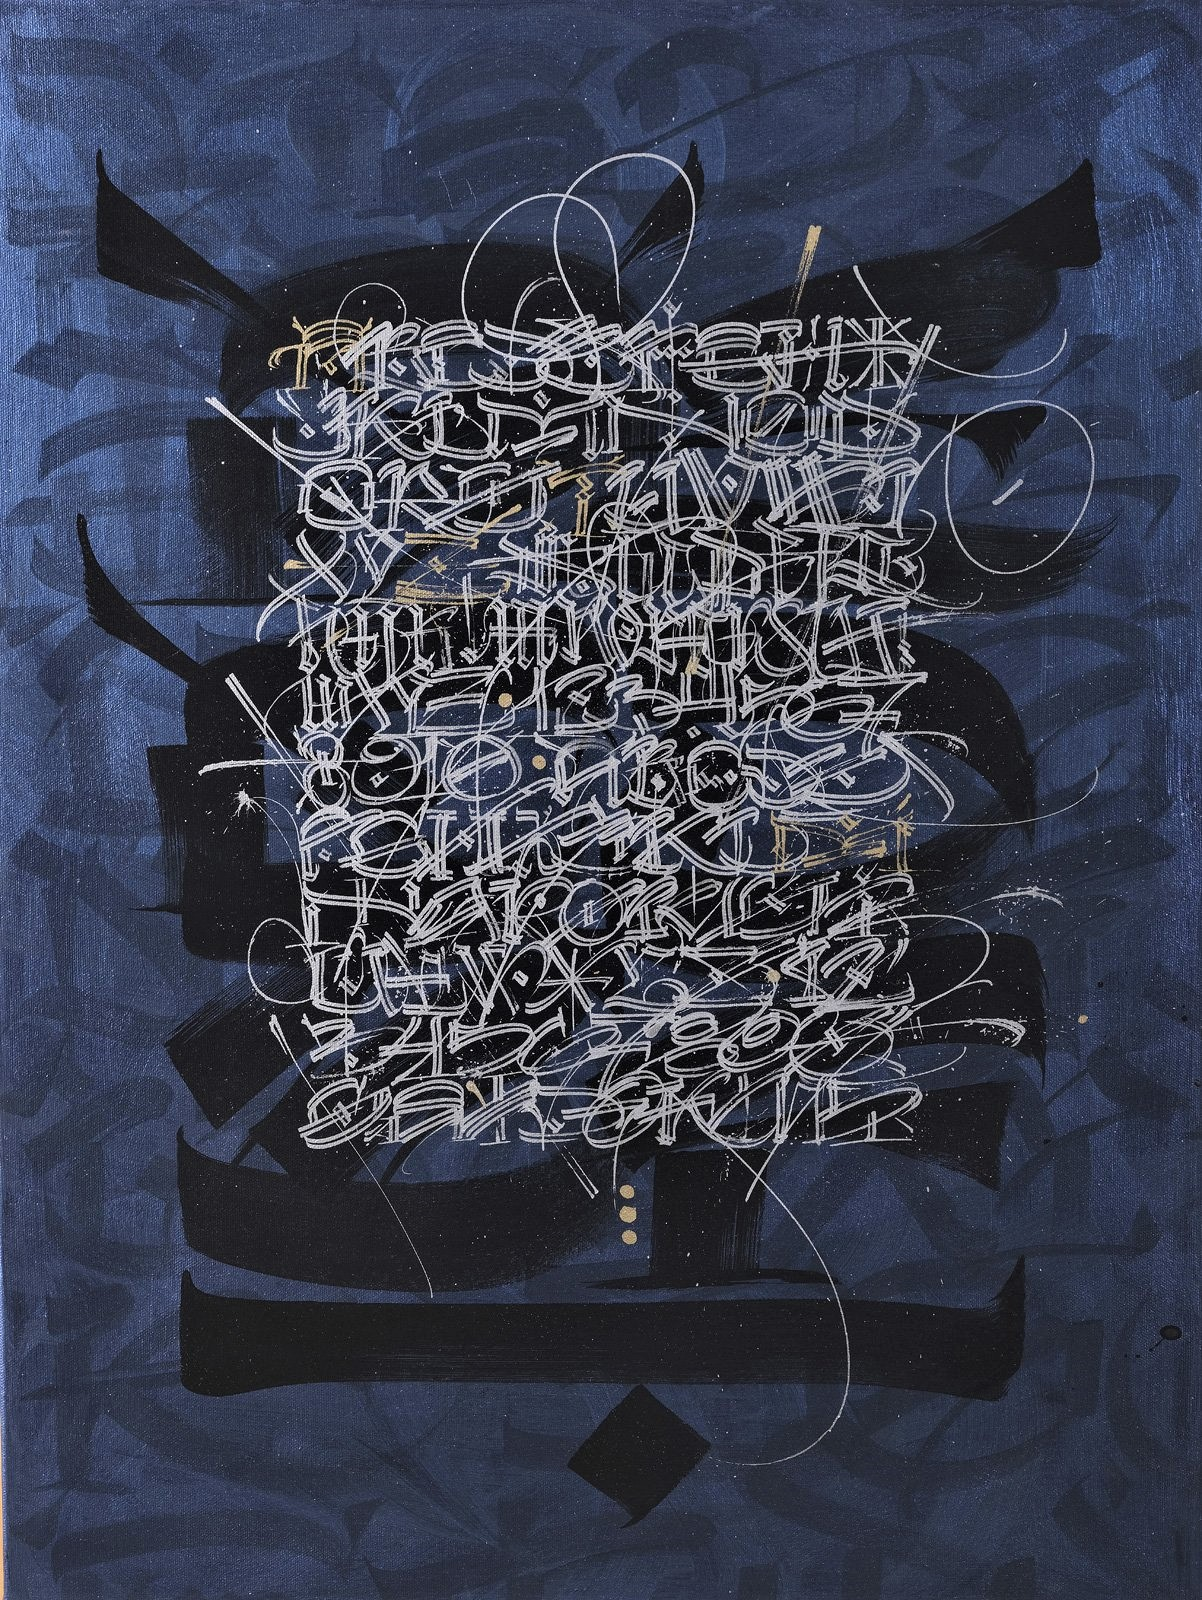 Calligraffiti and calligraphy by Said Dokins